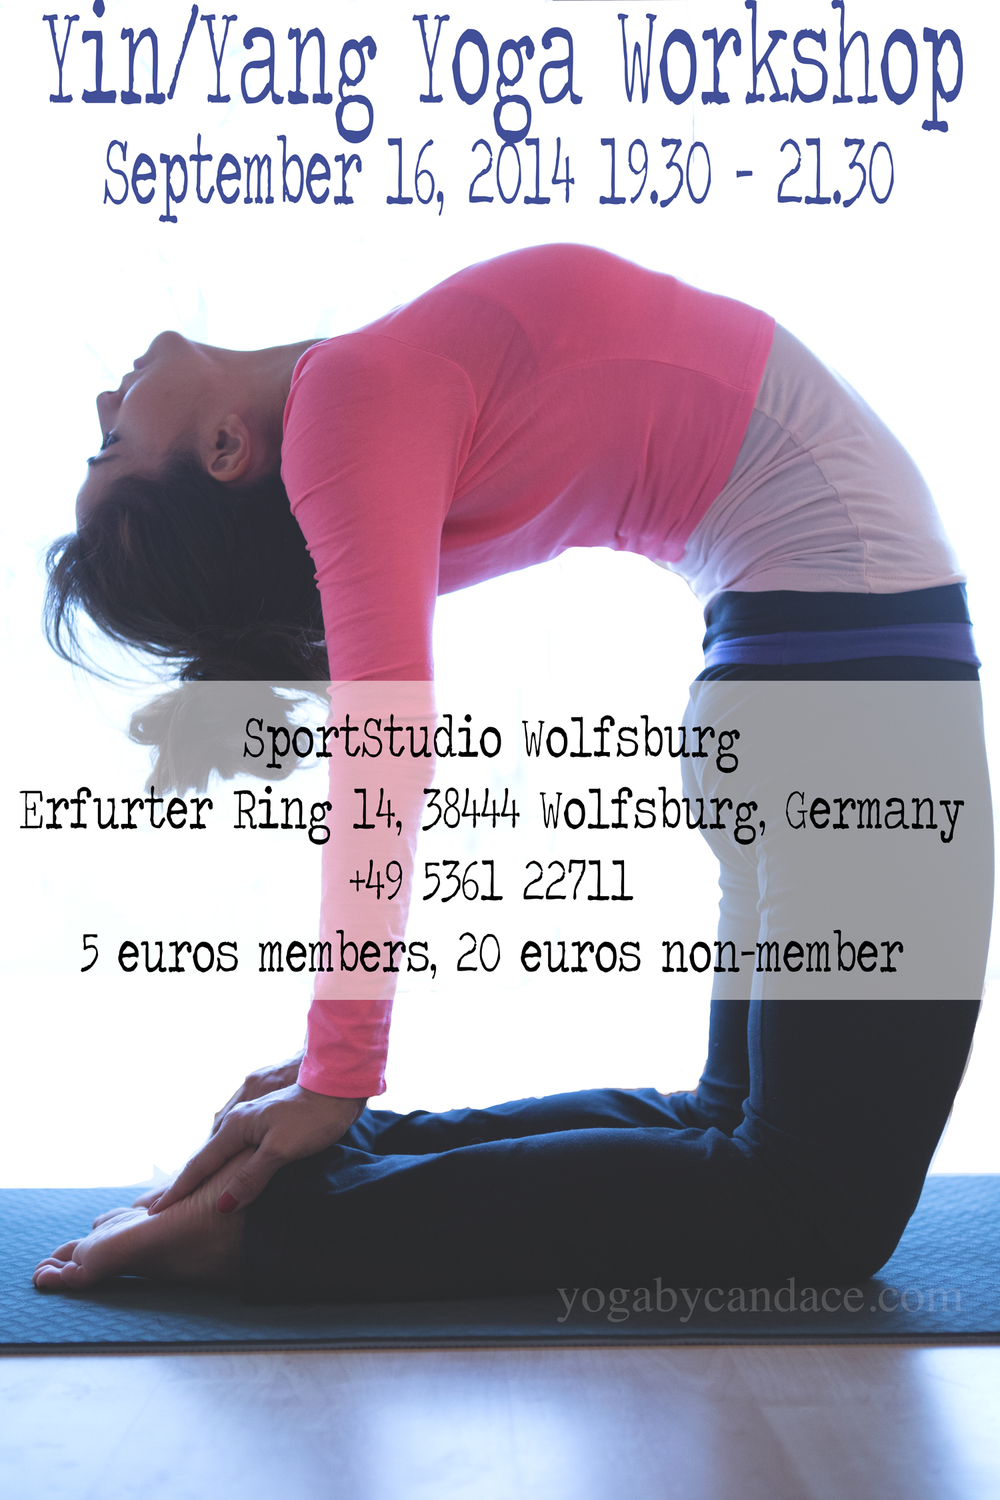 Yoga workshop in Germany